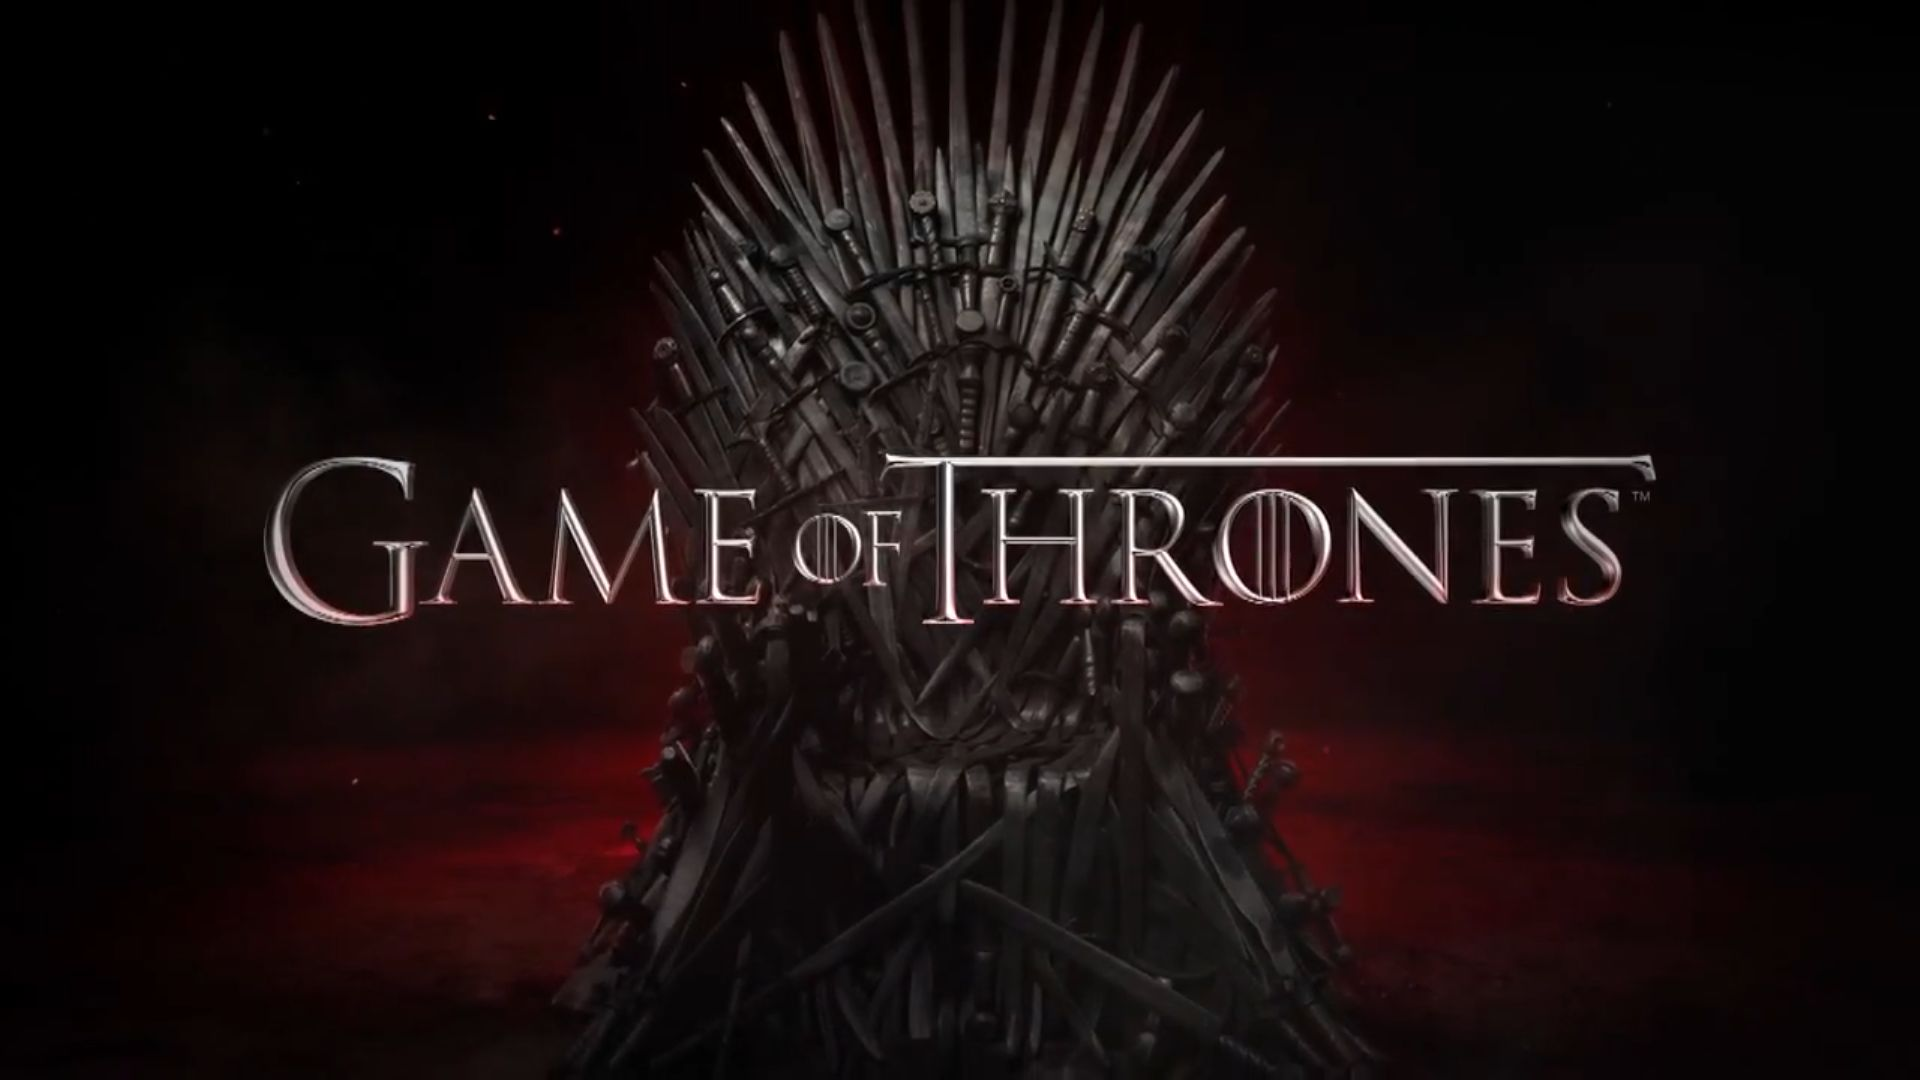 Game of Thrones Season 5 episode 1 Review